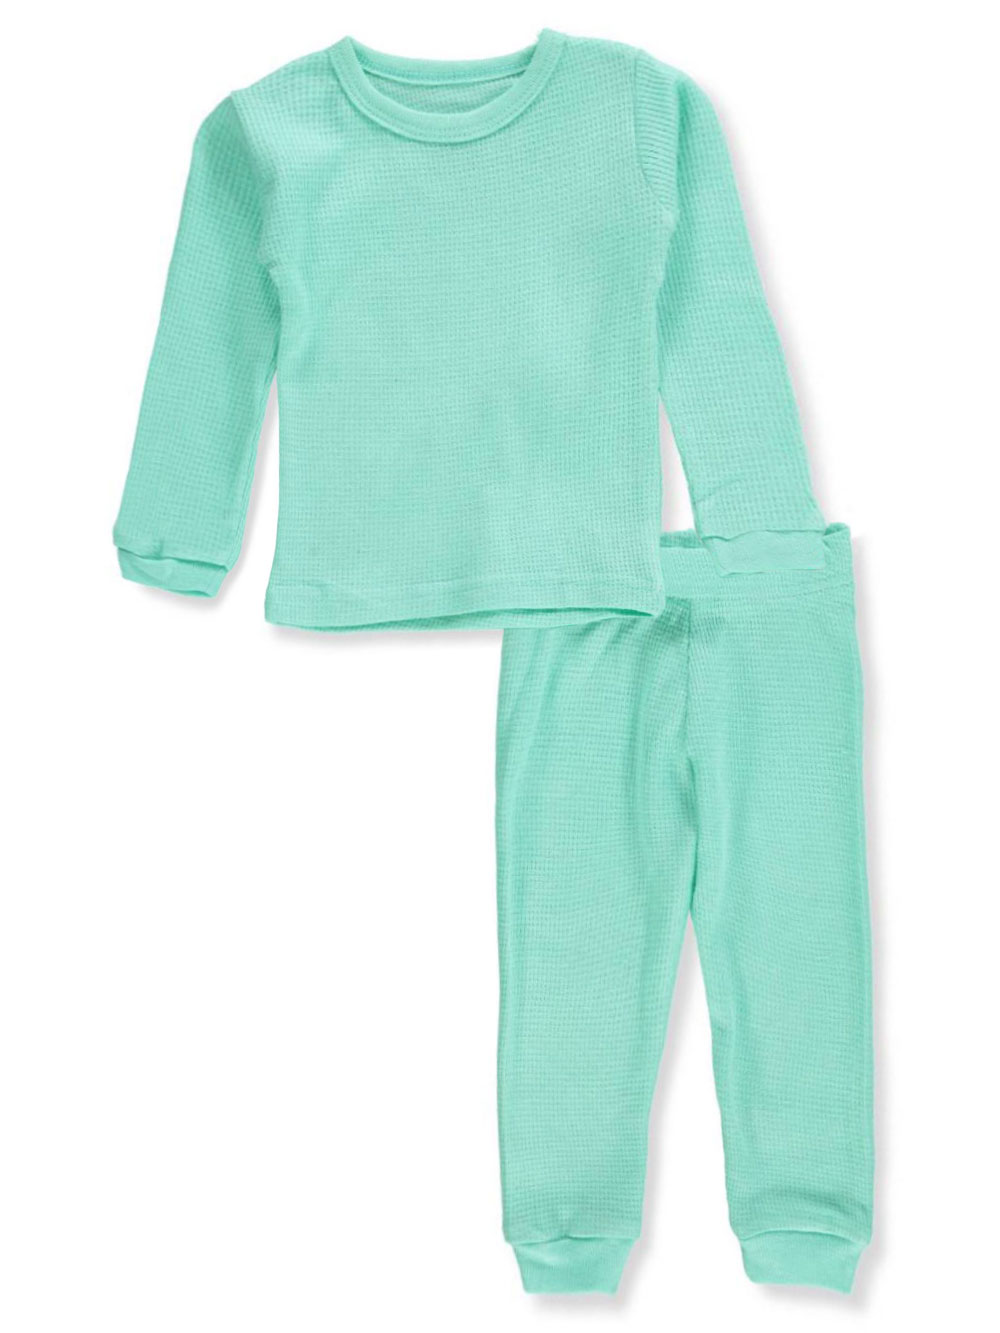 9d9e97b86 Ice2O Baby Girls' 2-Piece Thermal Long Underwear Set